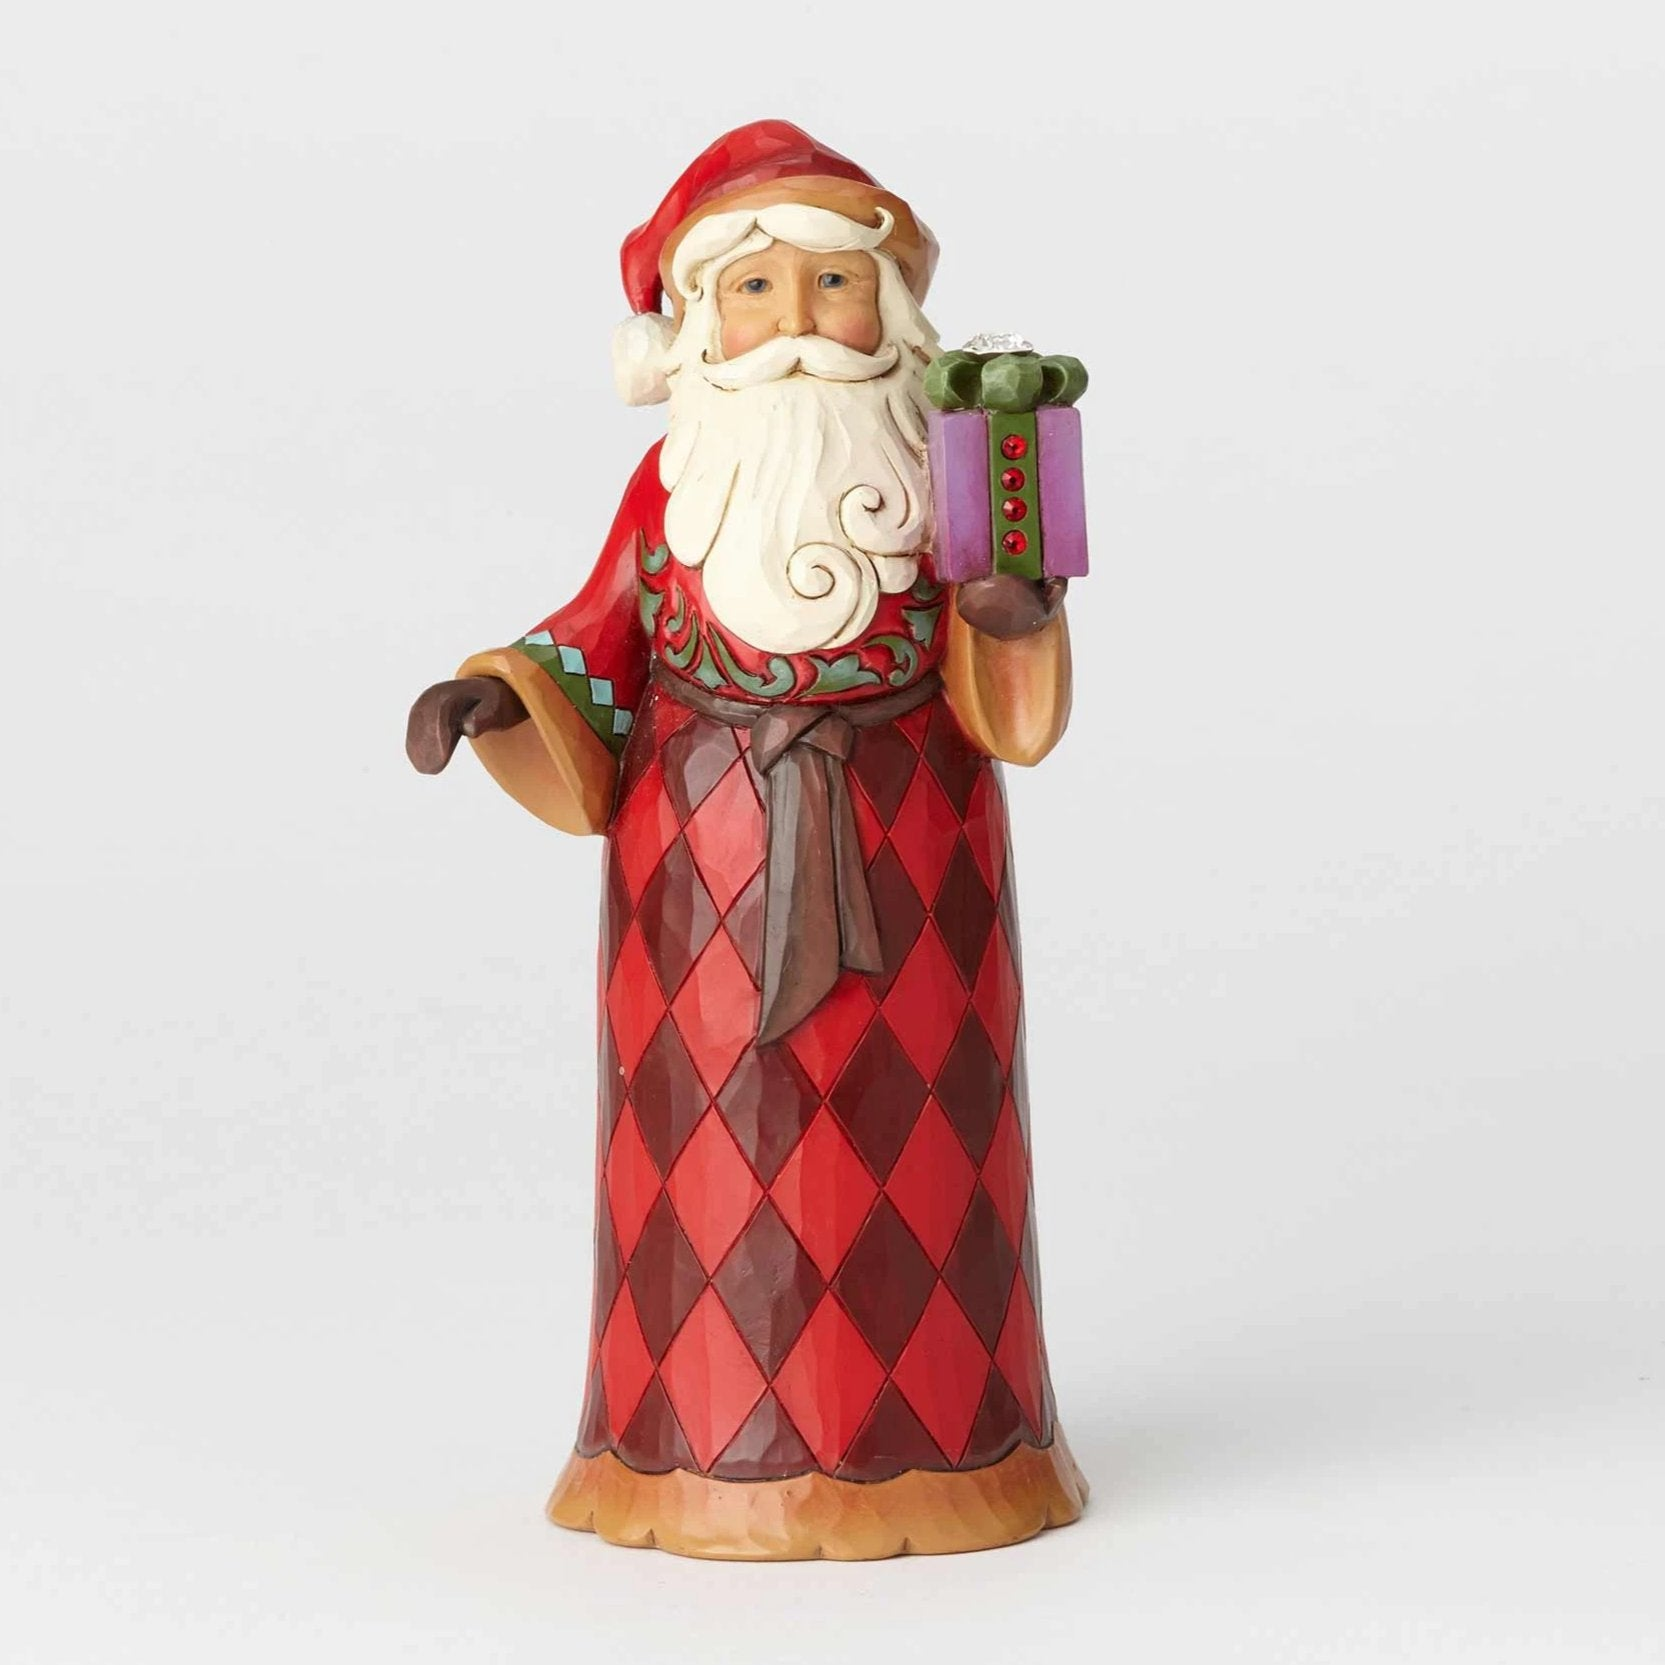 and santa vintagepoetic pin felt japan by decor decoration vintage christmas in claus plastic on decorative etsy made santas